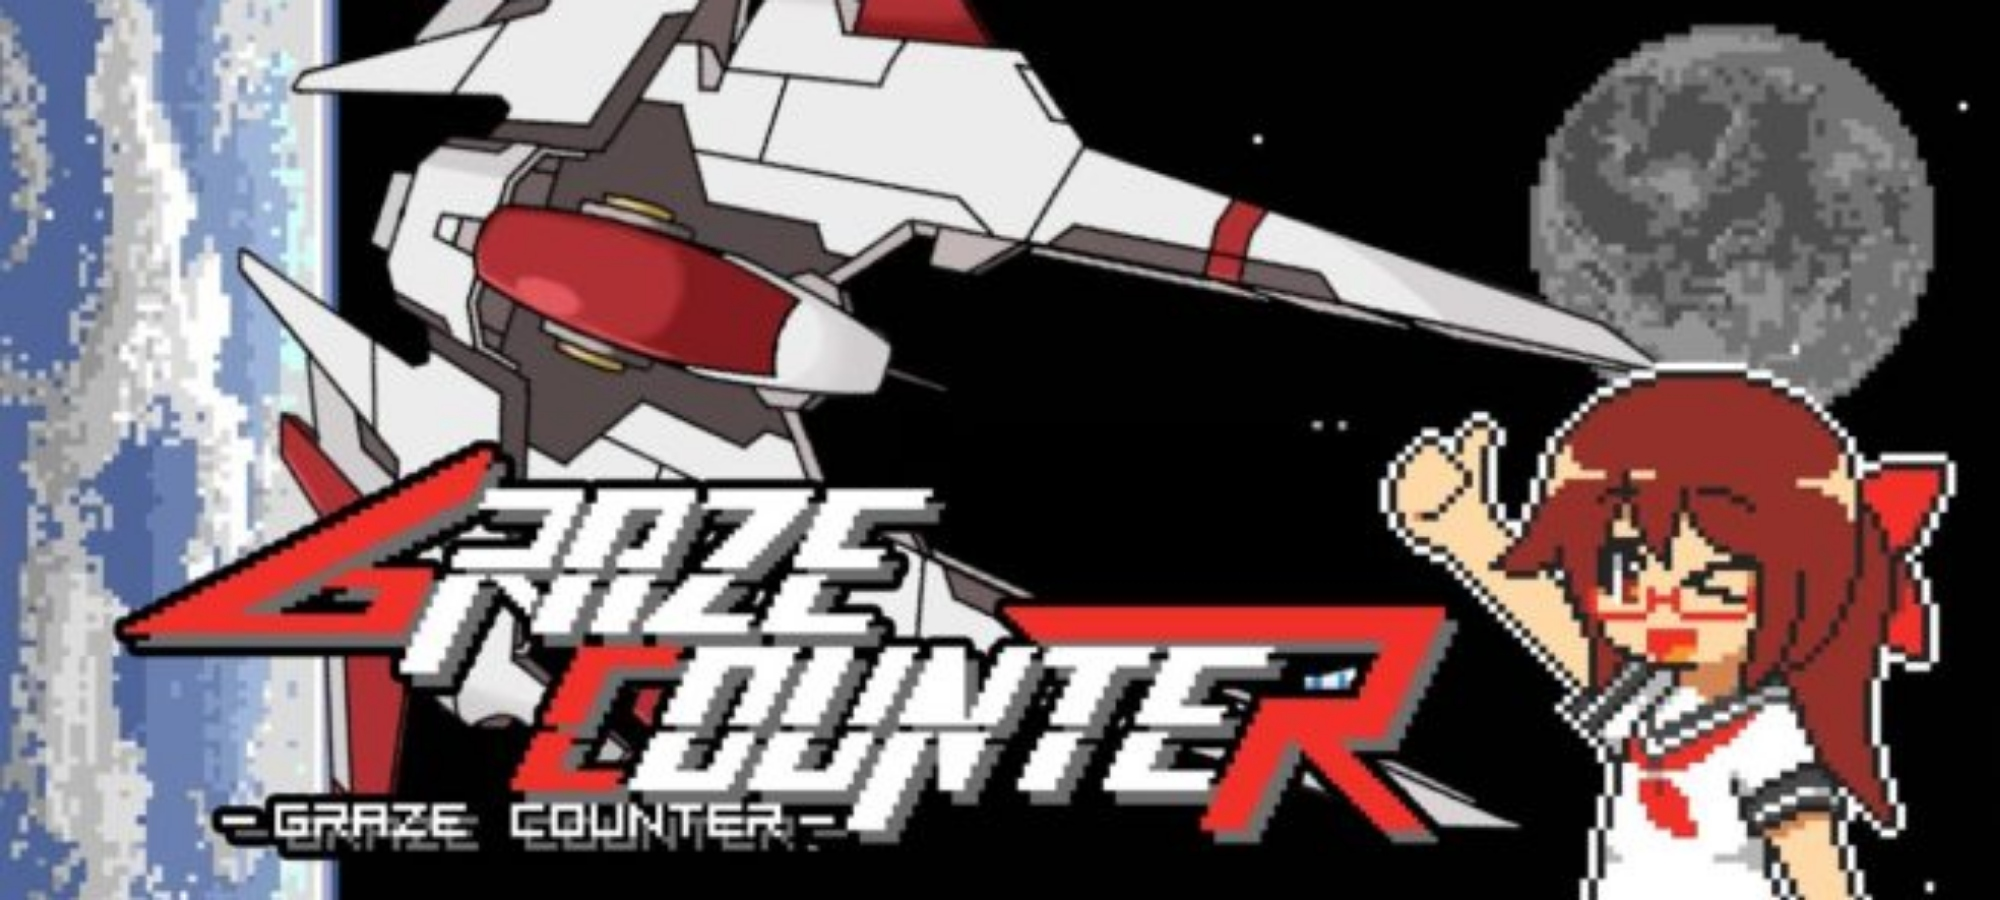 Graze Counter выйдет на Switch 1